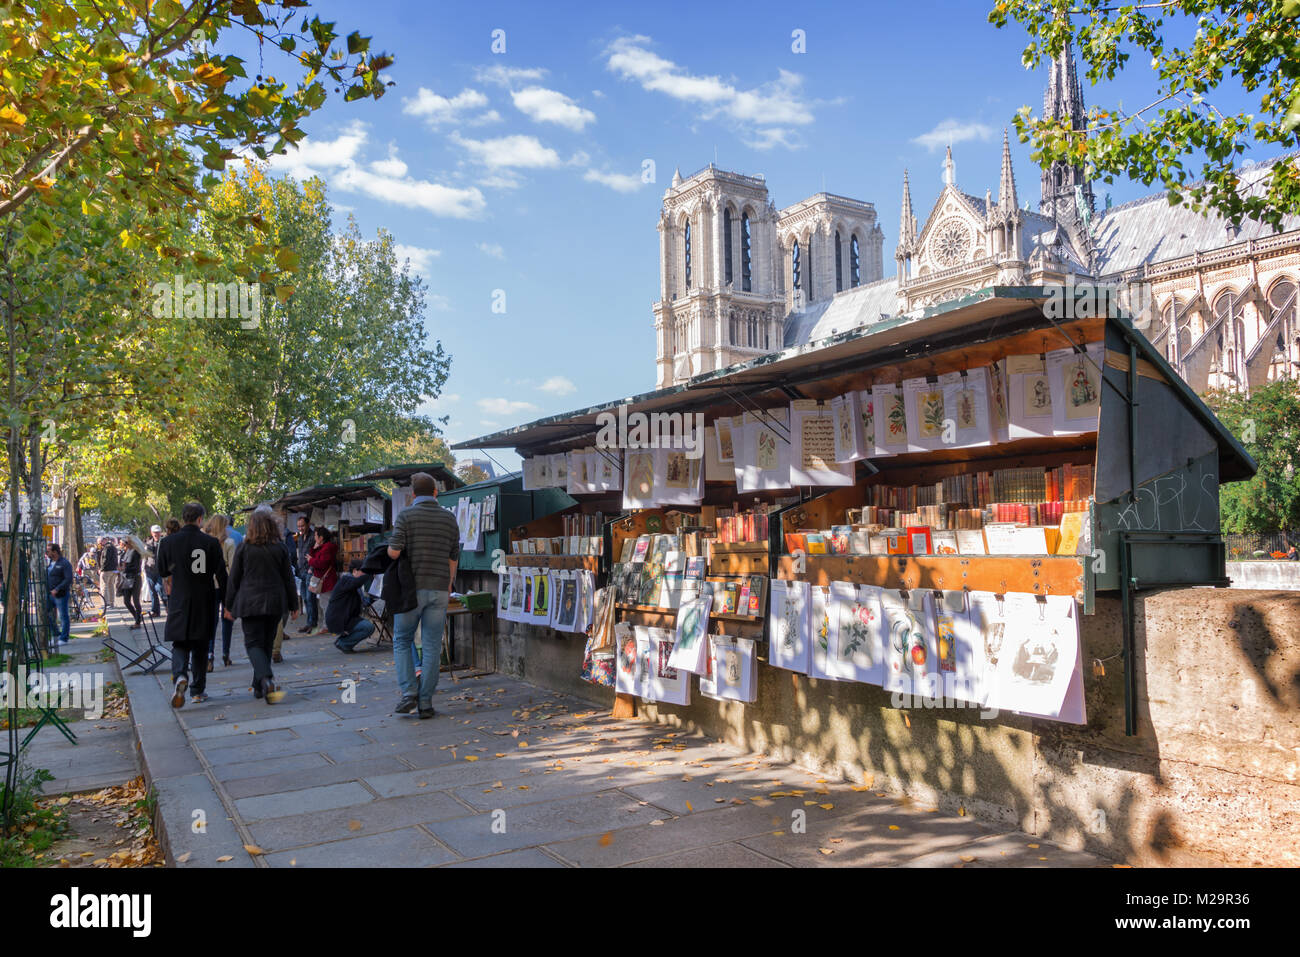 Tourists walking by the famous bookseller's boxes (bouquinistes) along the Seine River near Notre Dame in Paris, - Stock Image